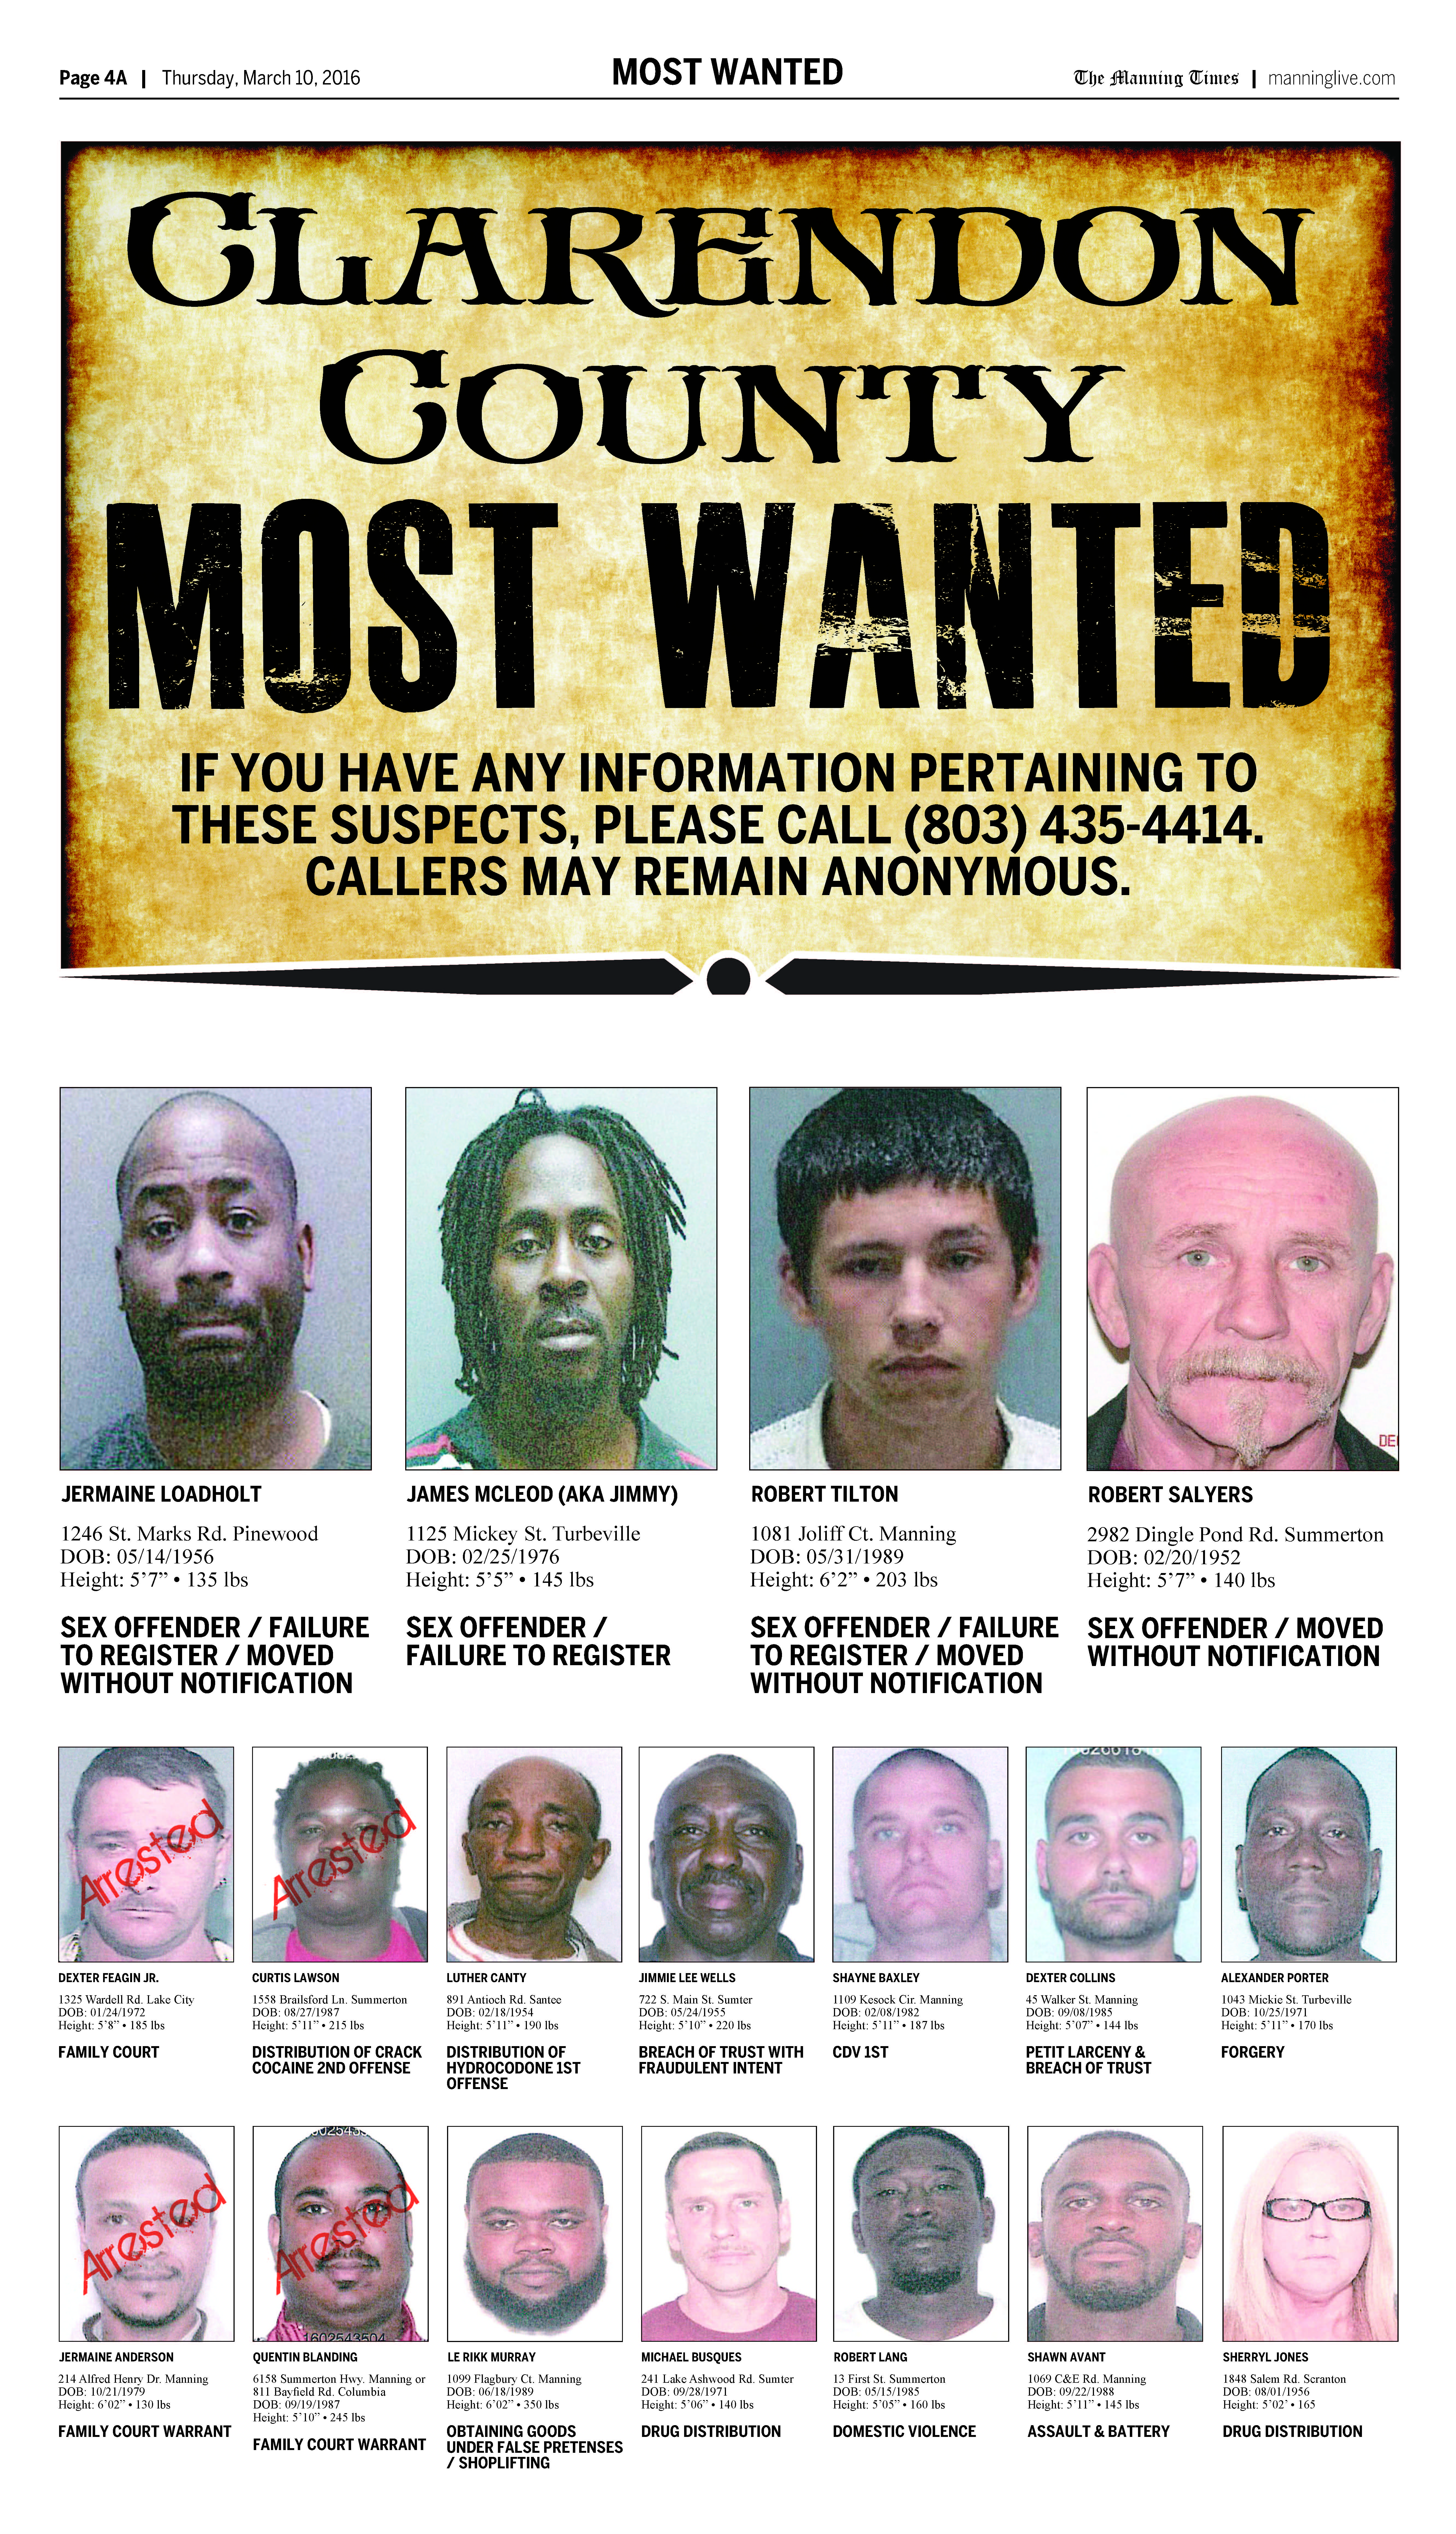 most wanted march 10